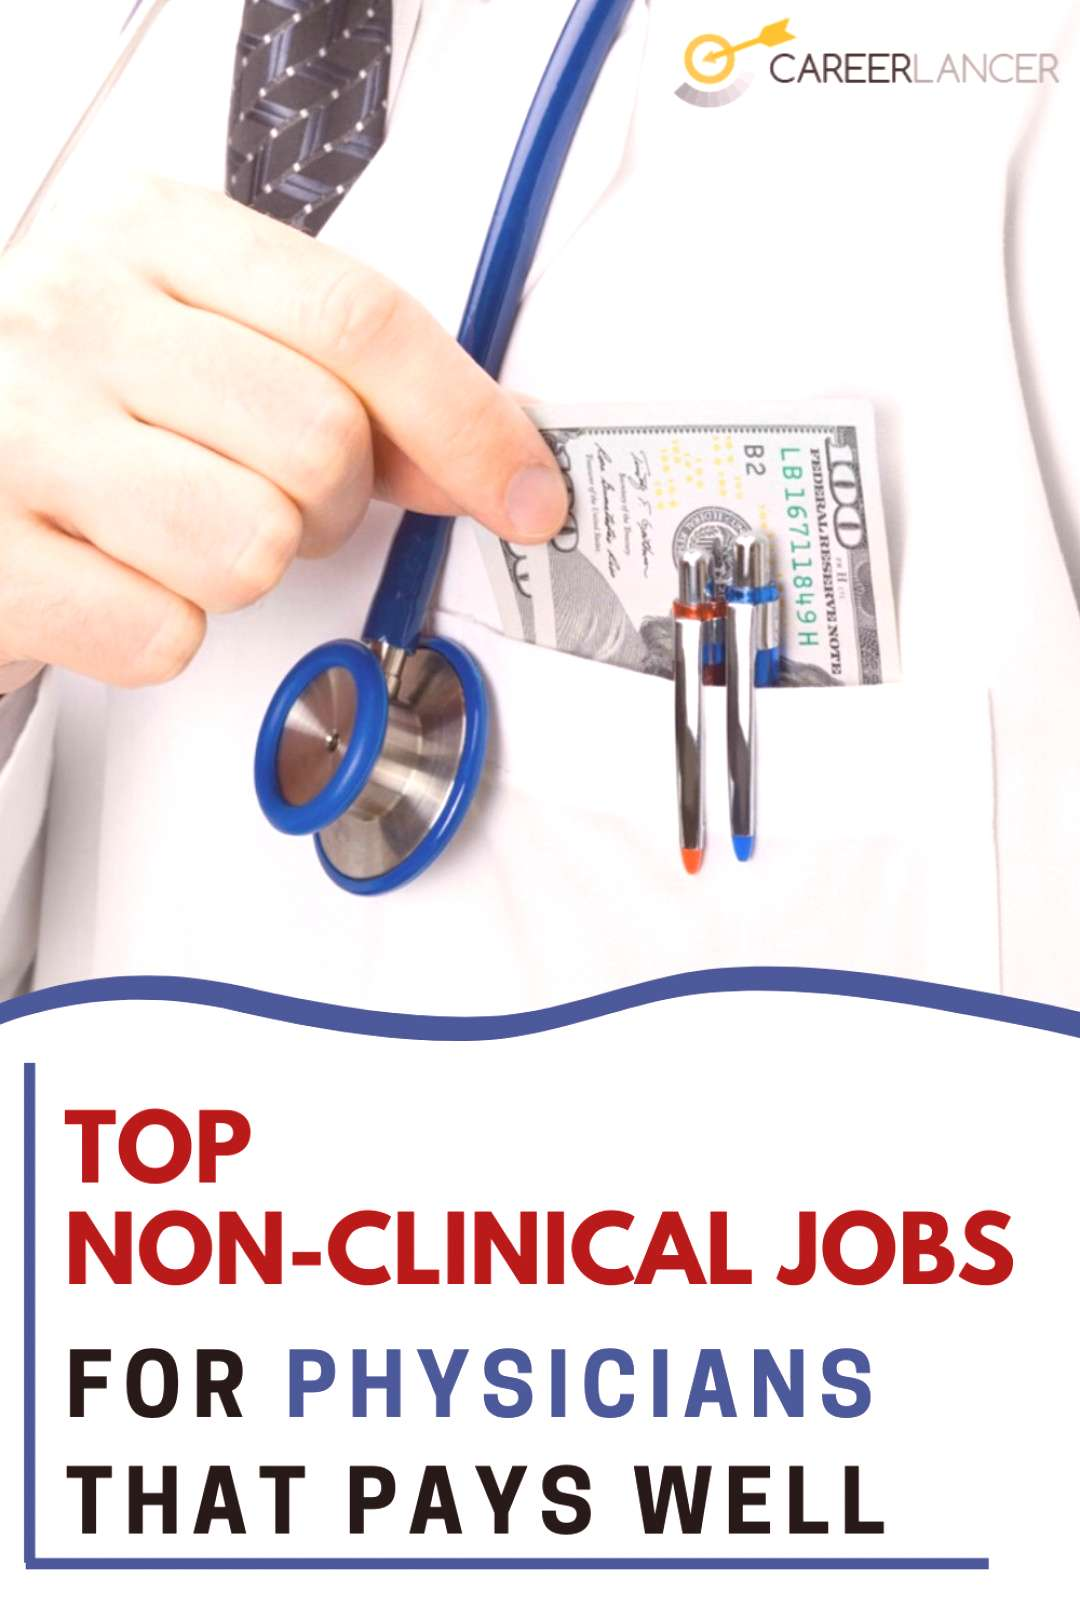 Top Non-Clinical Jobs For Physicians That Pays Well - Careerlancer  Most non-clinical careers for d